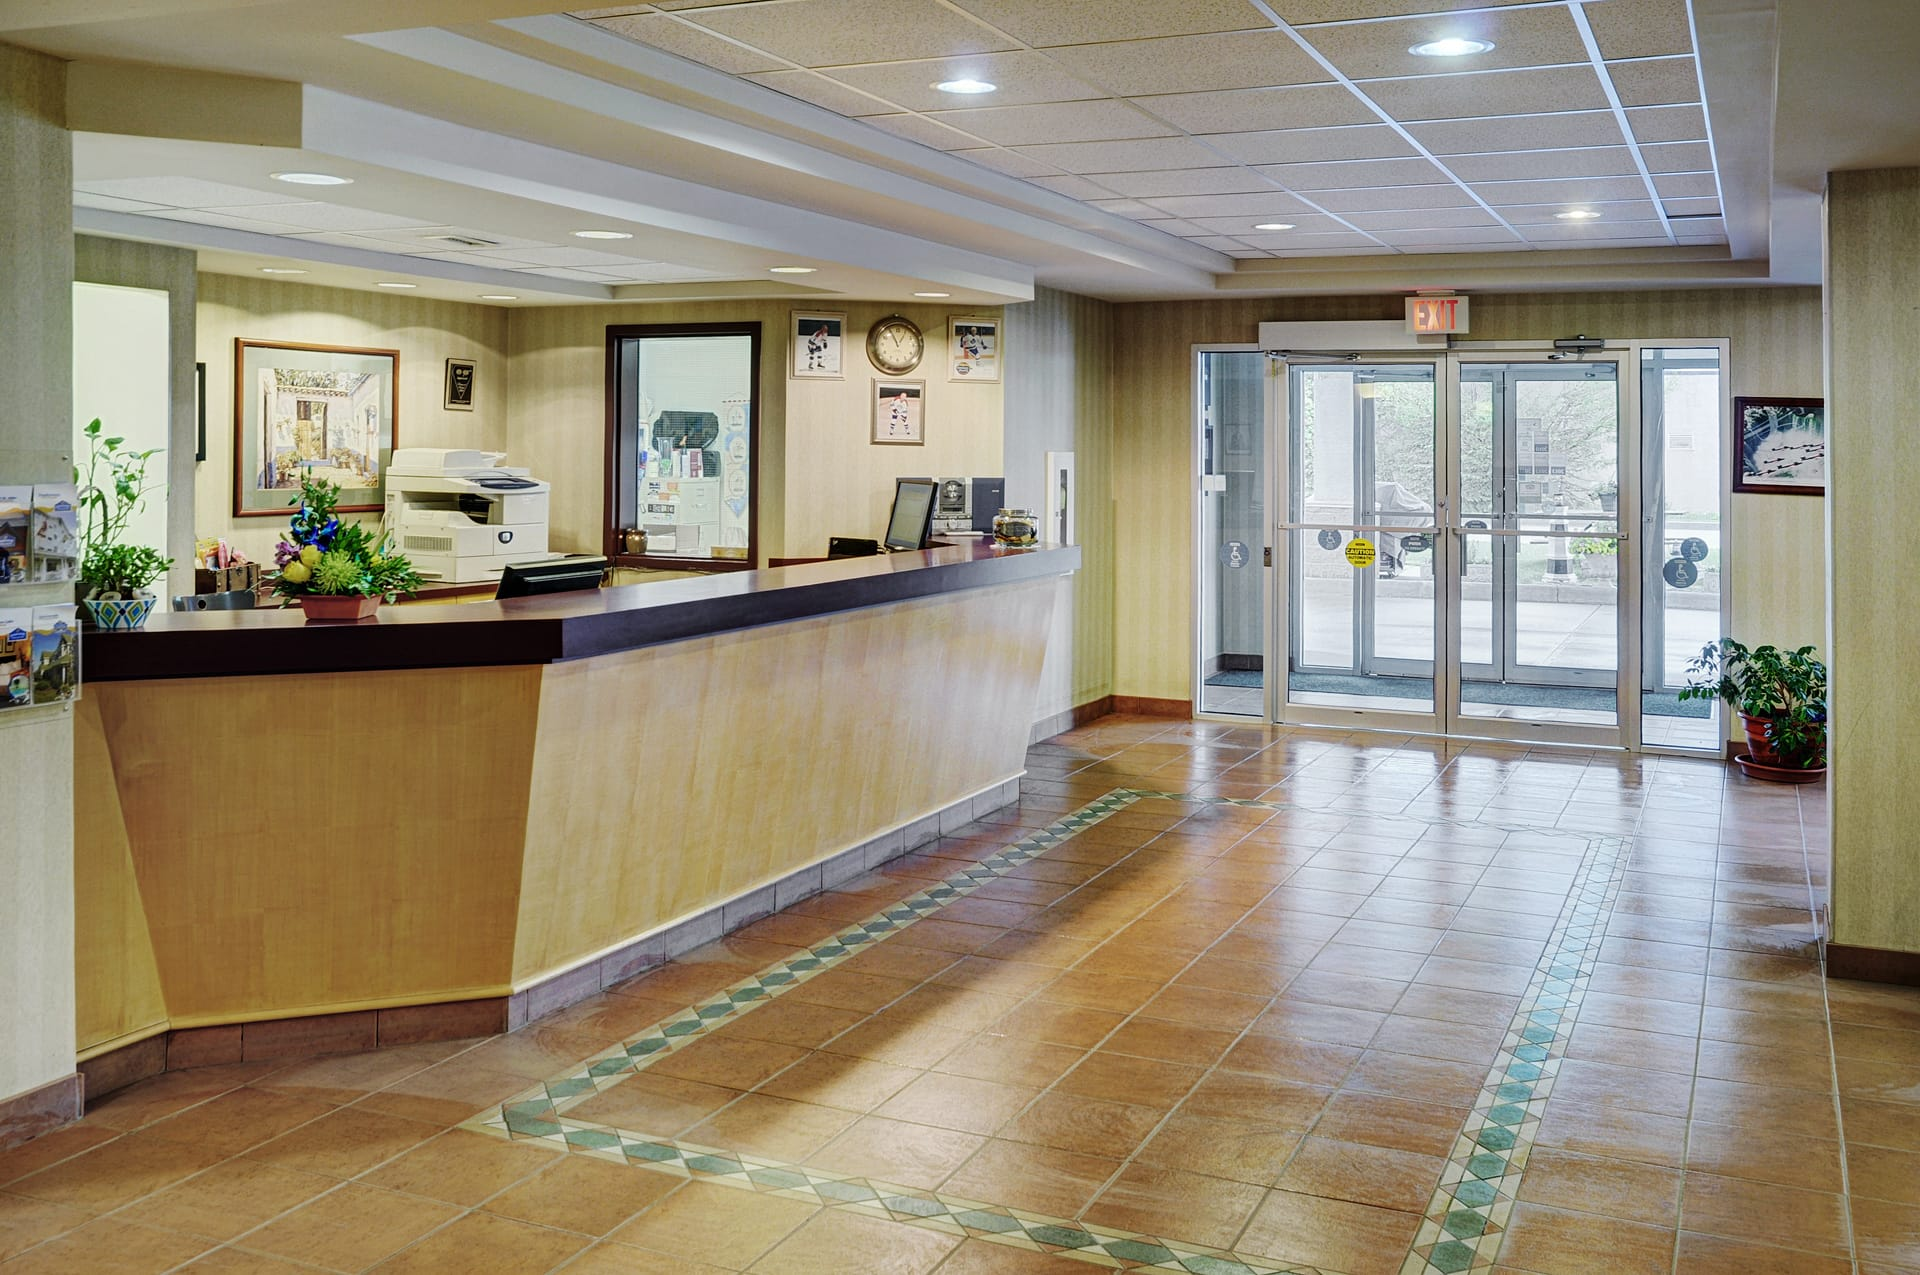 Lakeview Inns & Suites - Whitecourt